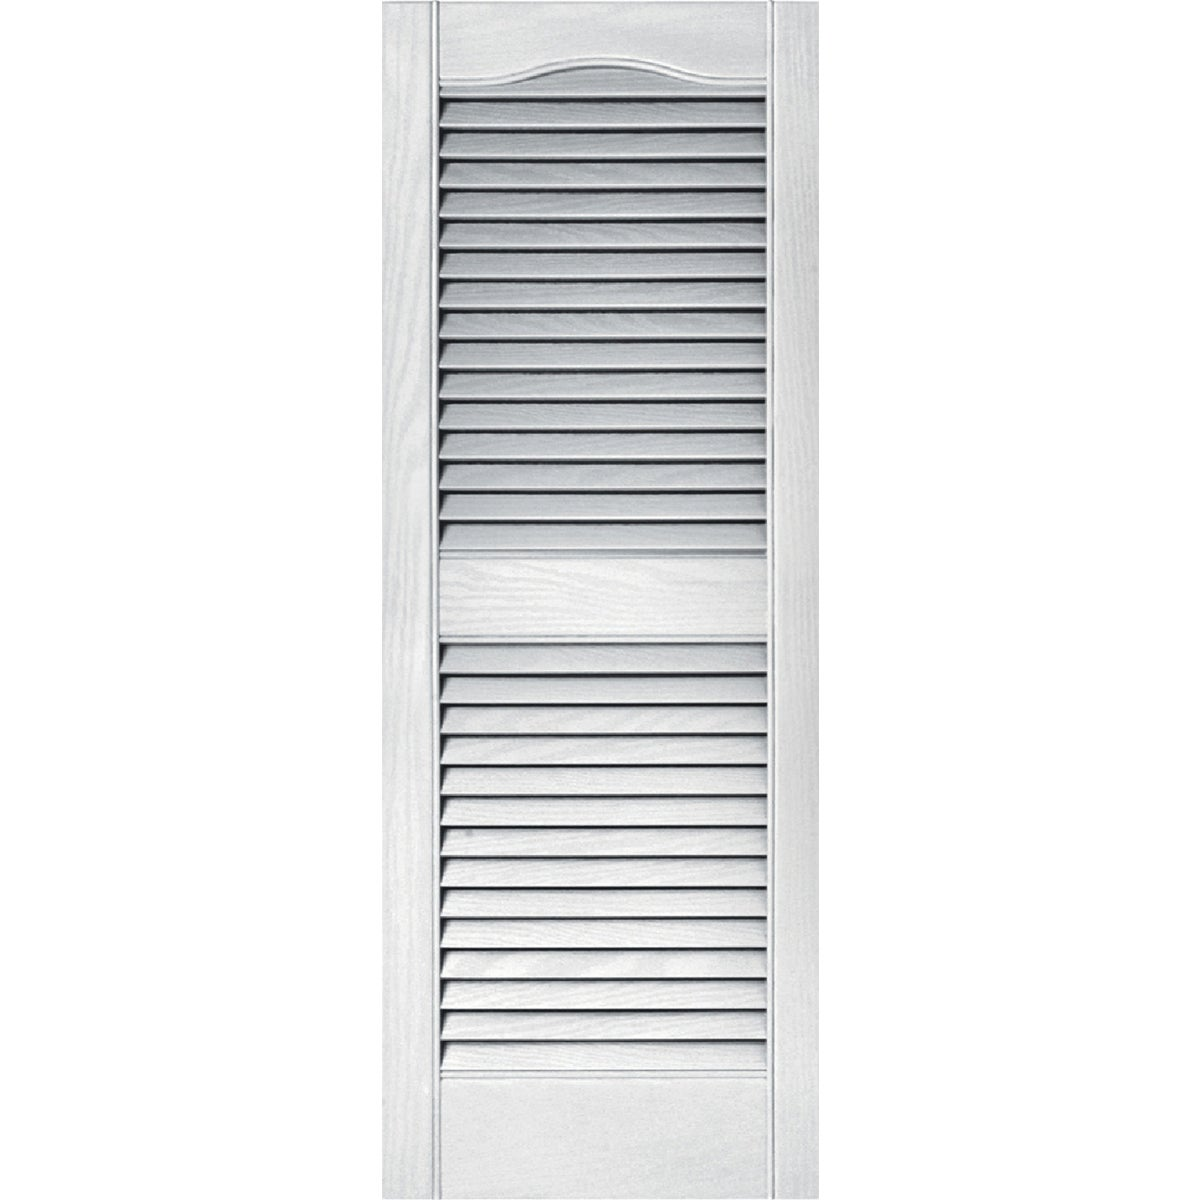 15X39 WHT LOUVER SHUTTER - 020140039001 by The Tapco Group